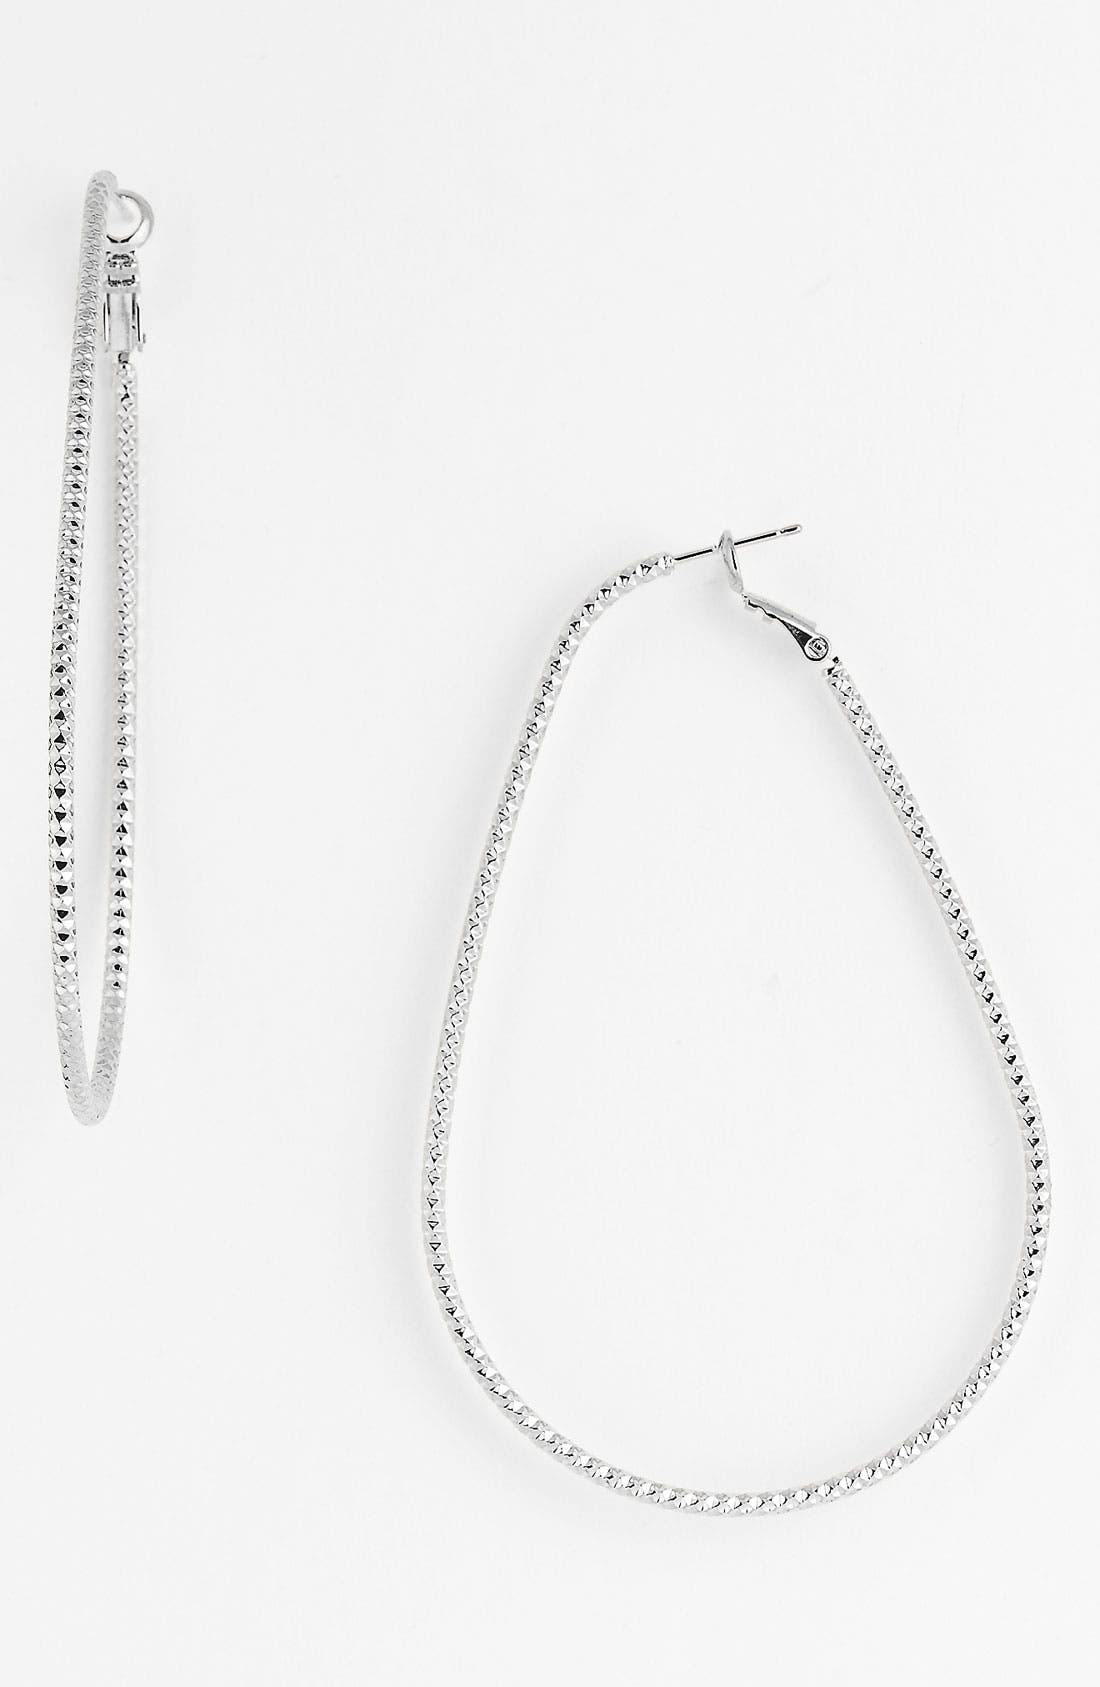 Alternate Image 1 Selected - Natasha Couture Large Oval Hoop Earrings